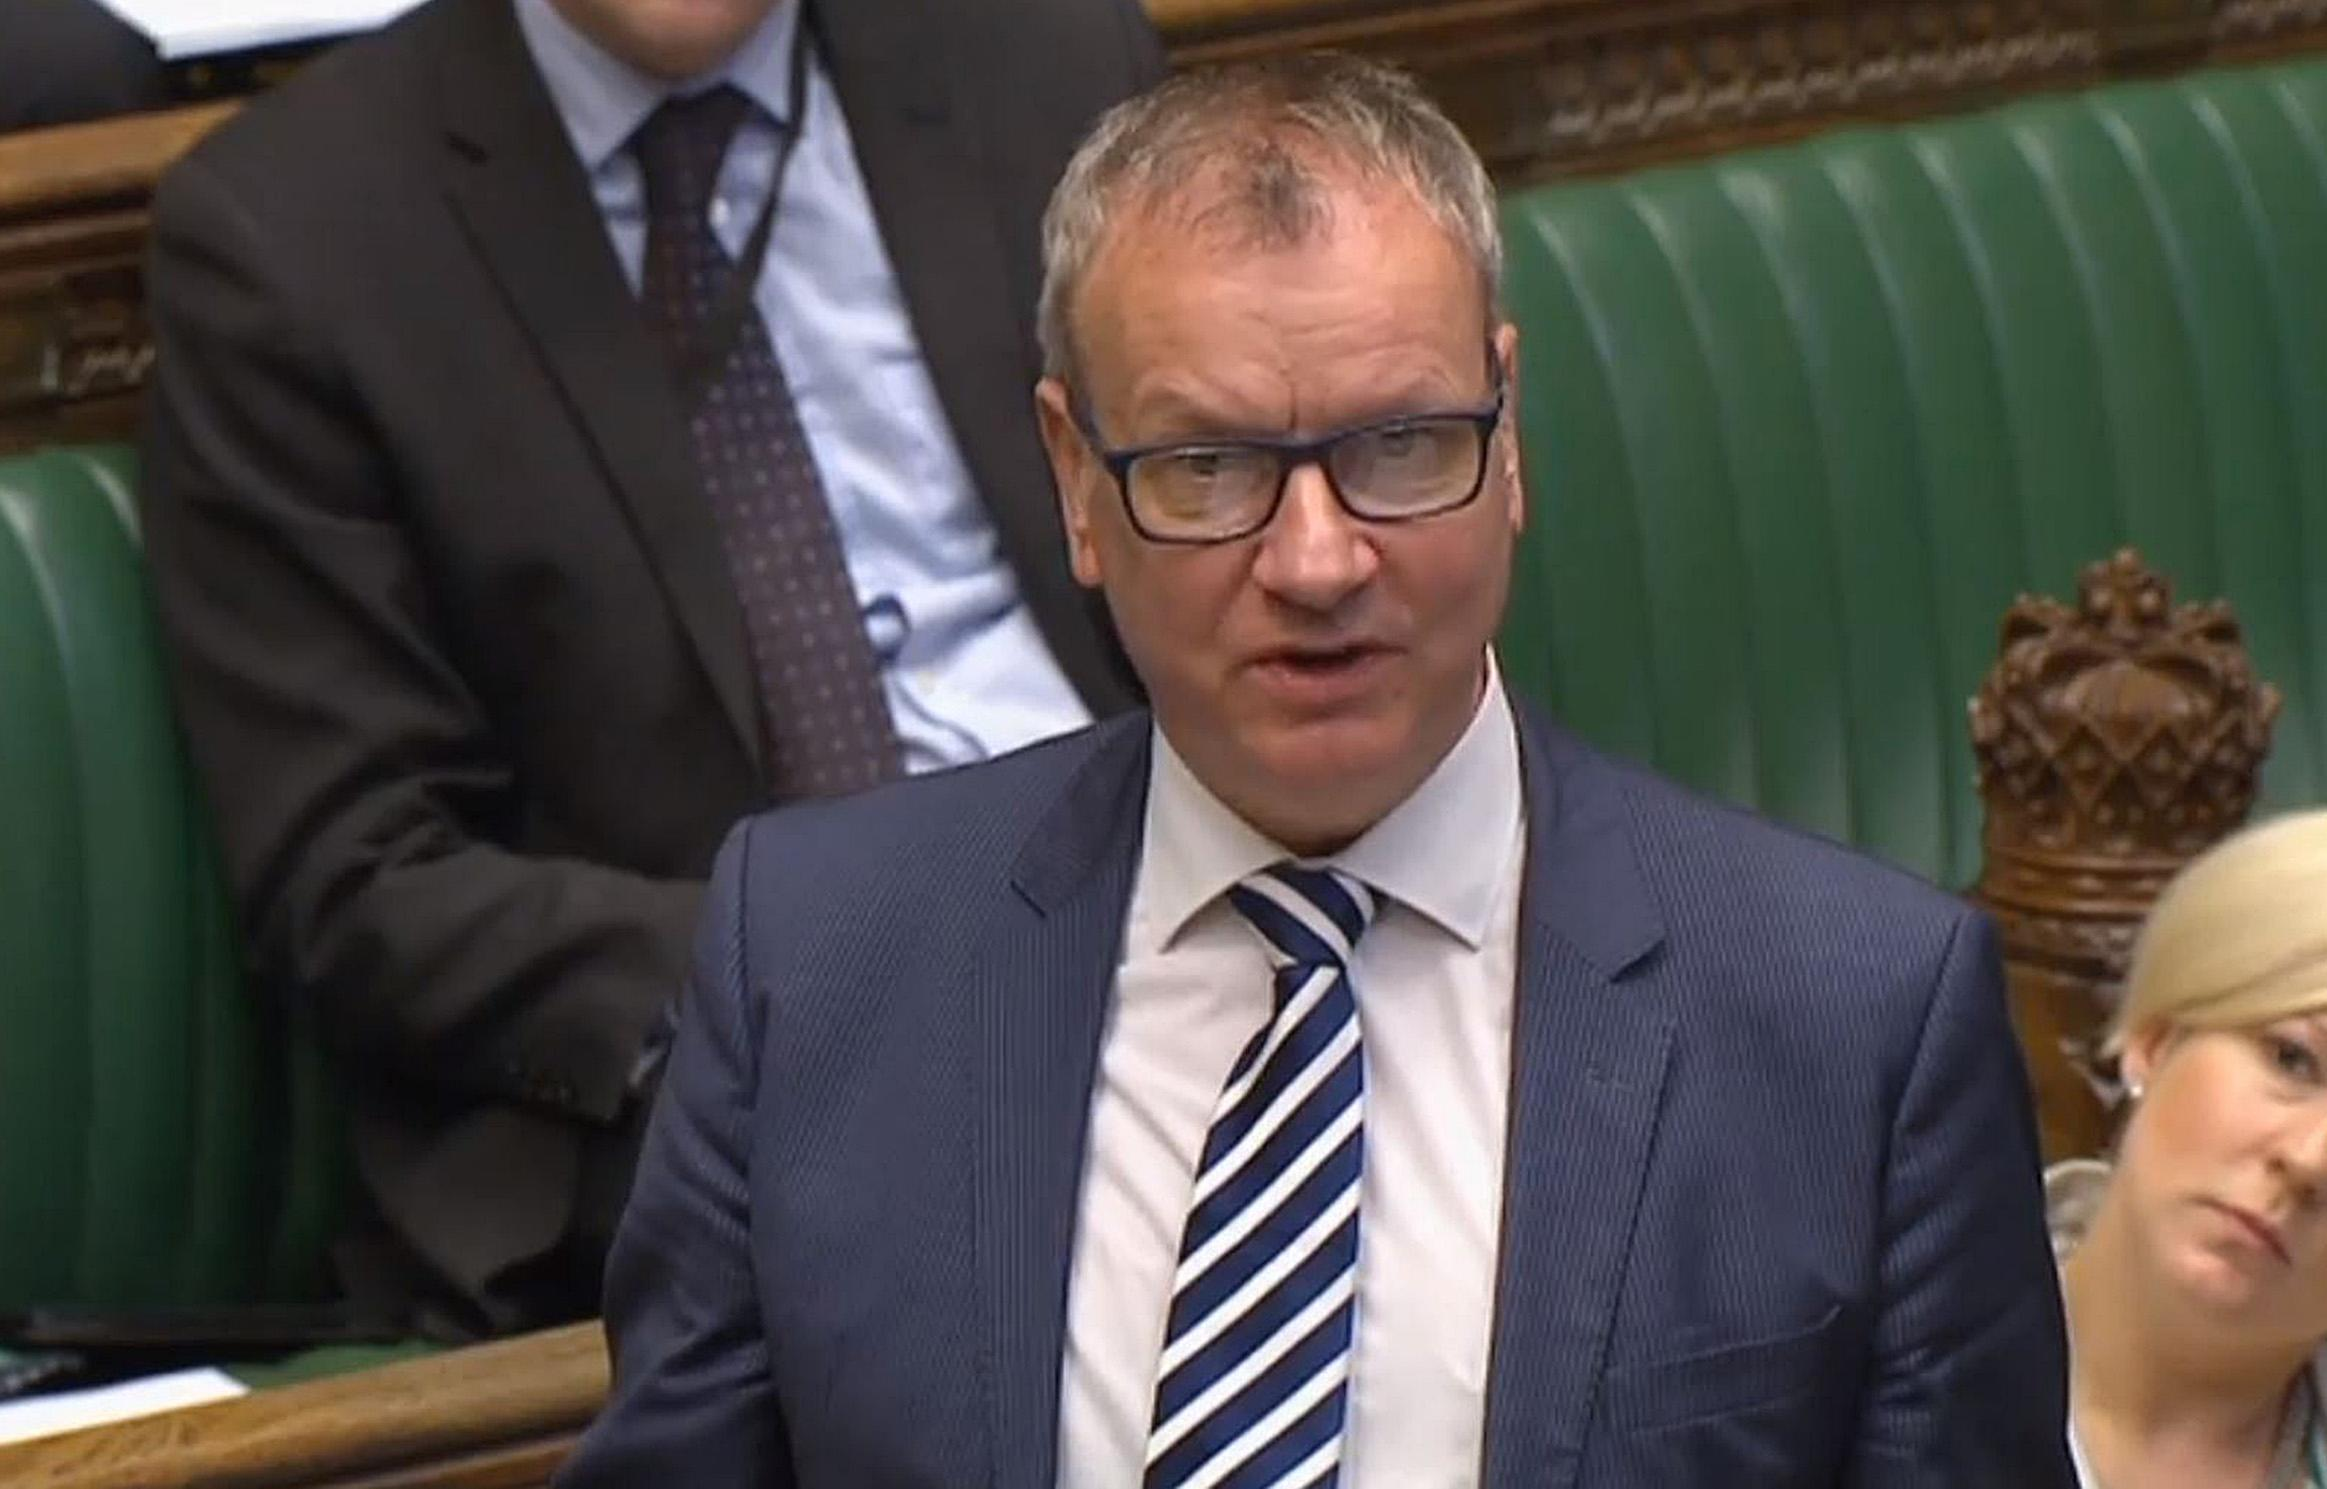 SNP Commons leader Pete Wishart speaks in the House of Commons, London, where he said that ministers must urgently explain whether or not the police investigation into Conservative MPs' election expenses swayed a decision for a snap election.